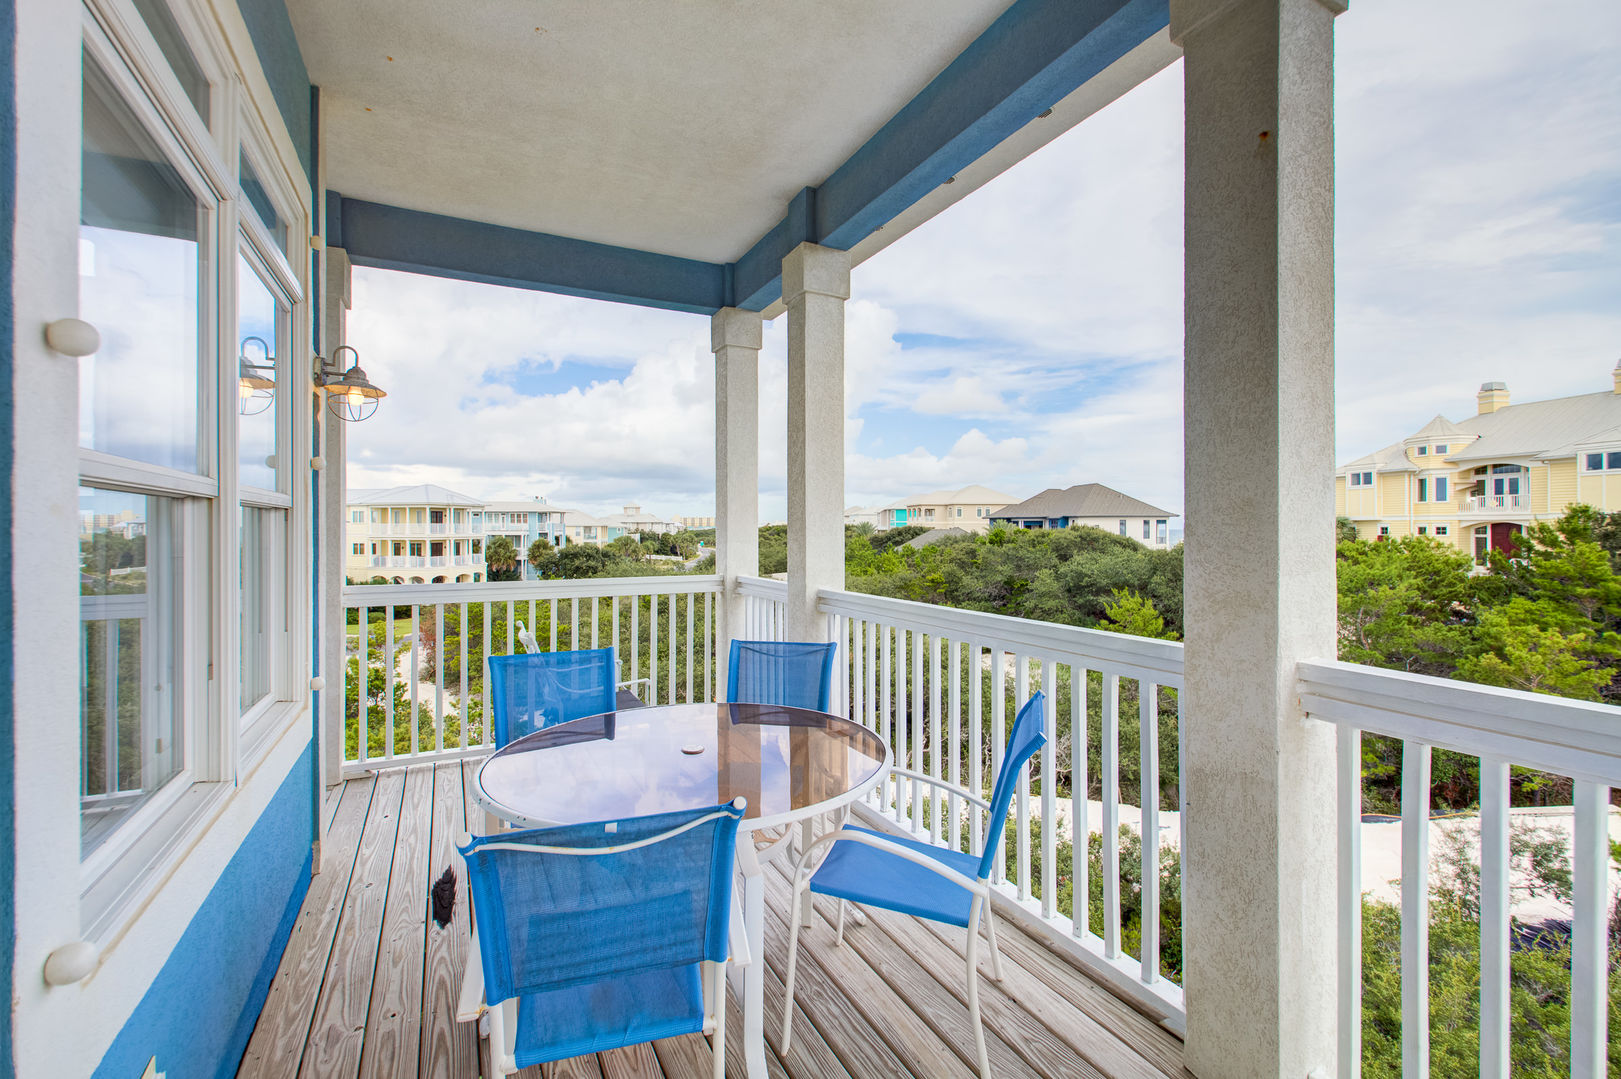 Enjoy a Meal on the Balcony of Vacation Home in Gulf Shores.